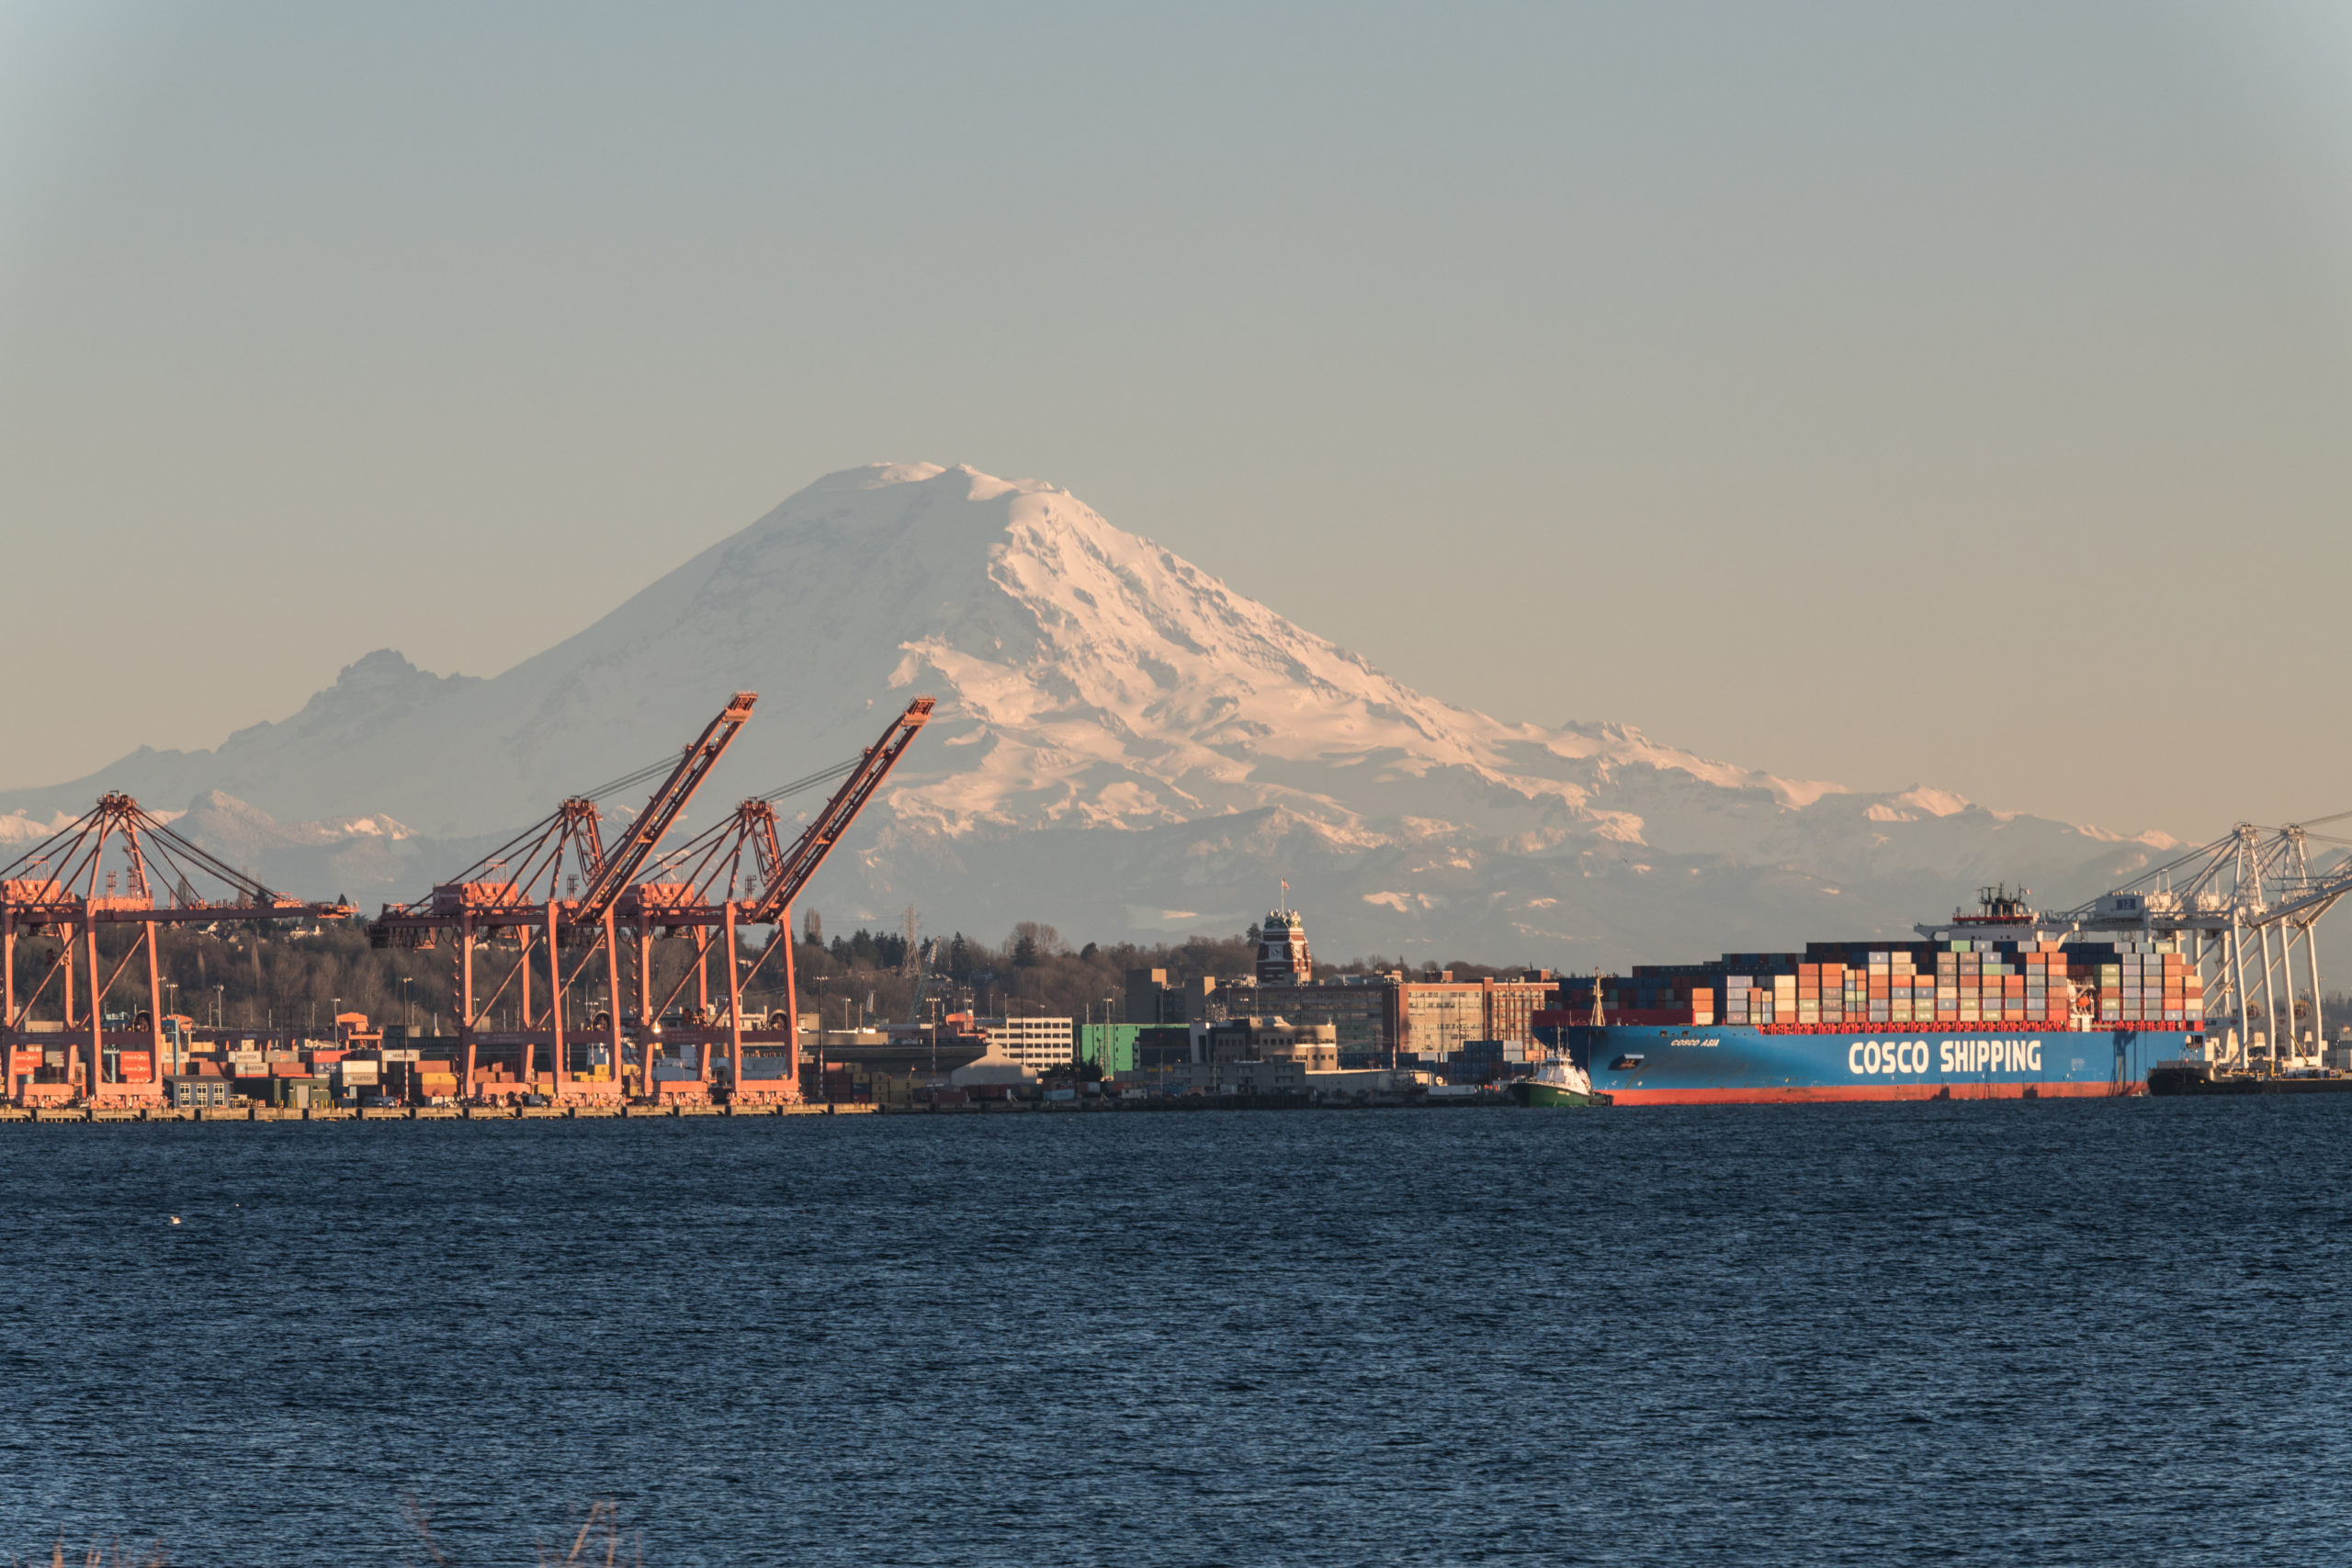 Seattle, USA - Mar 4, 2019: A Cosco shipping tanker on Elliott bay leaving port late in the day with Mount Rainier in the background.